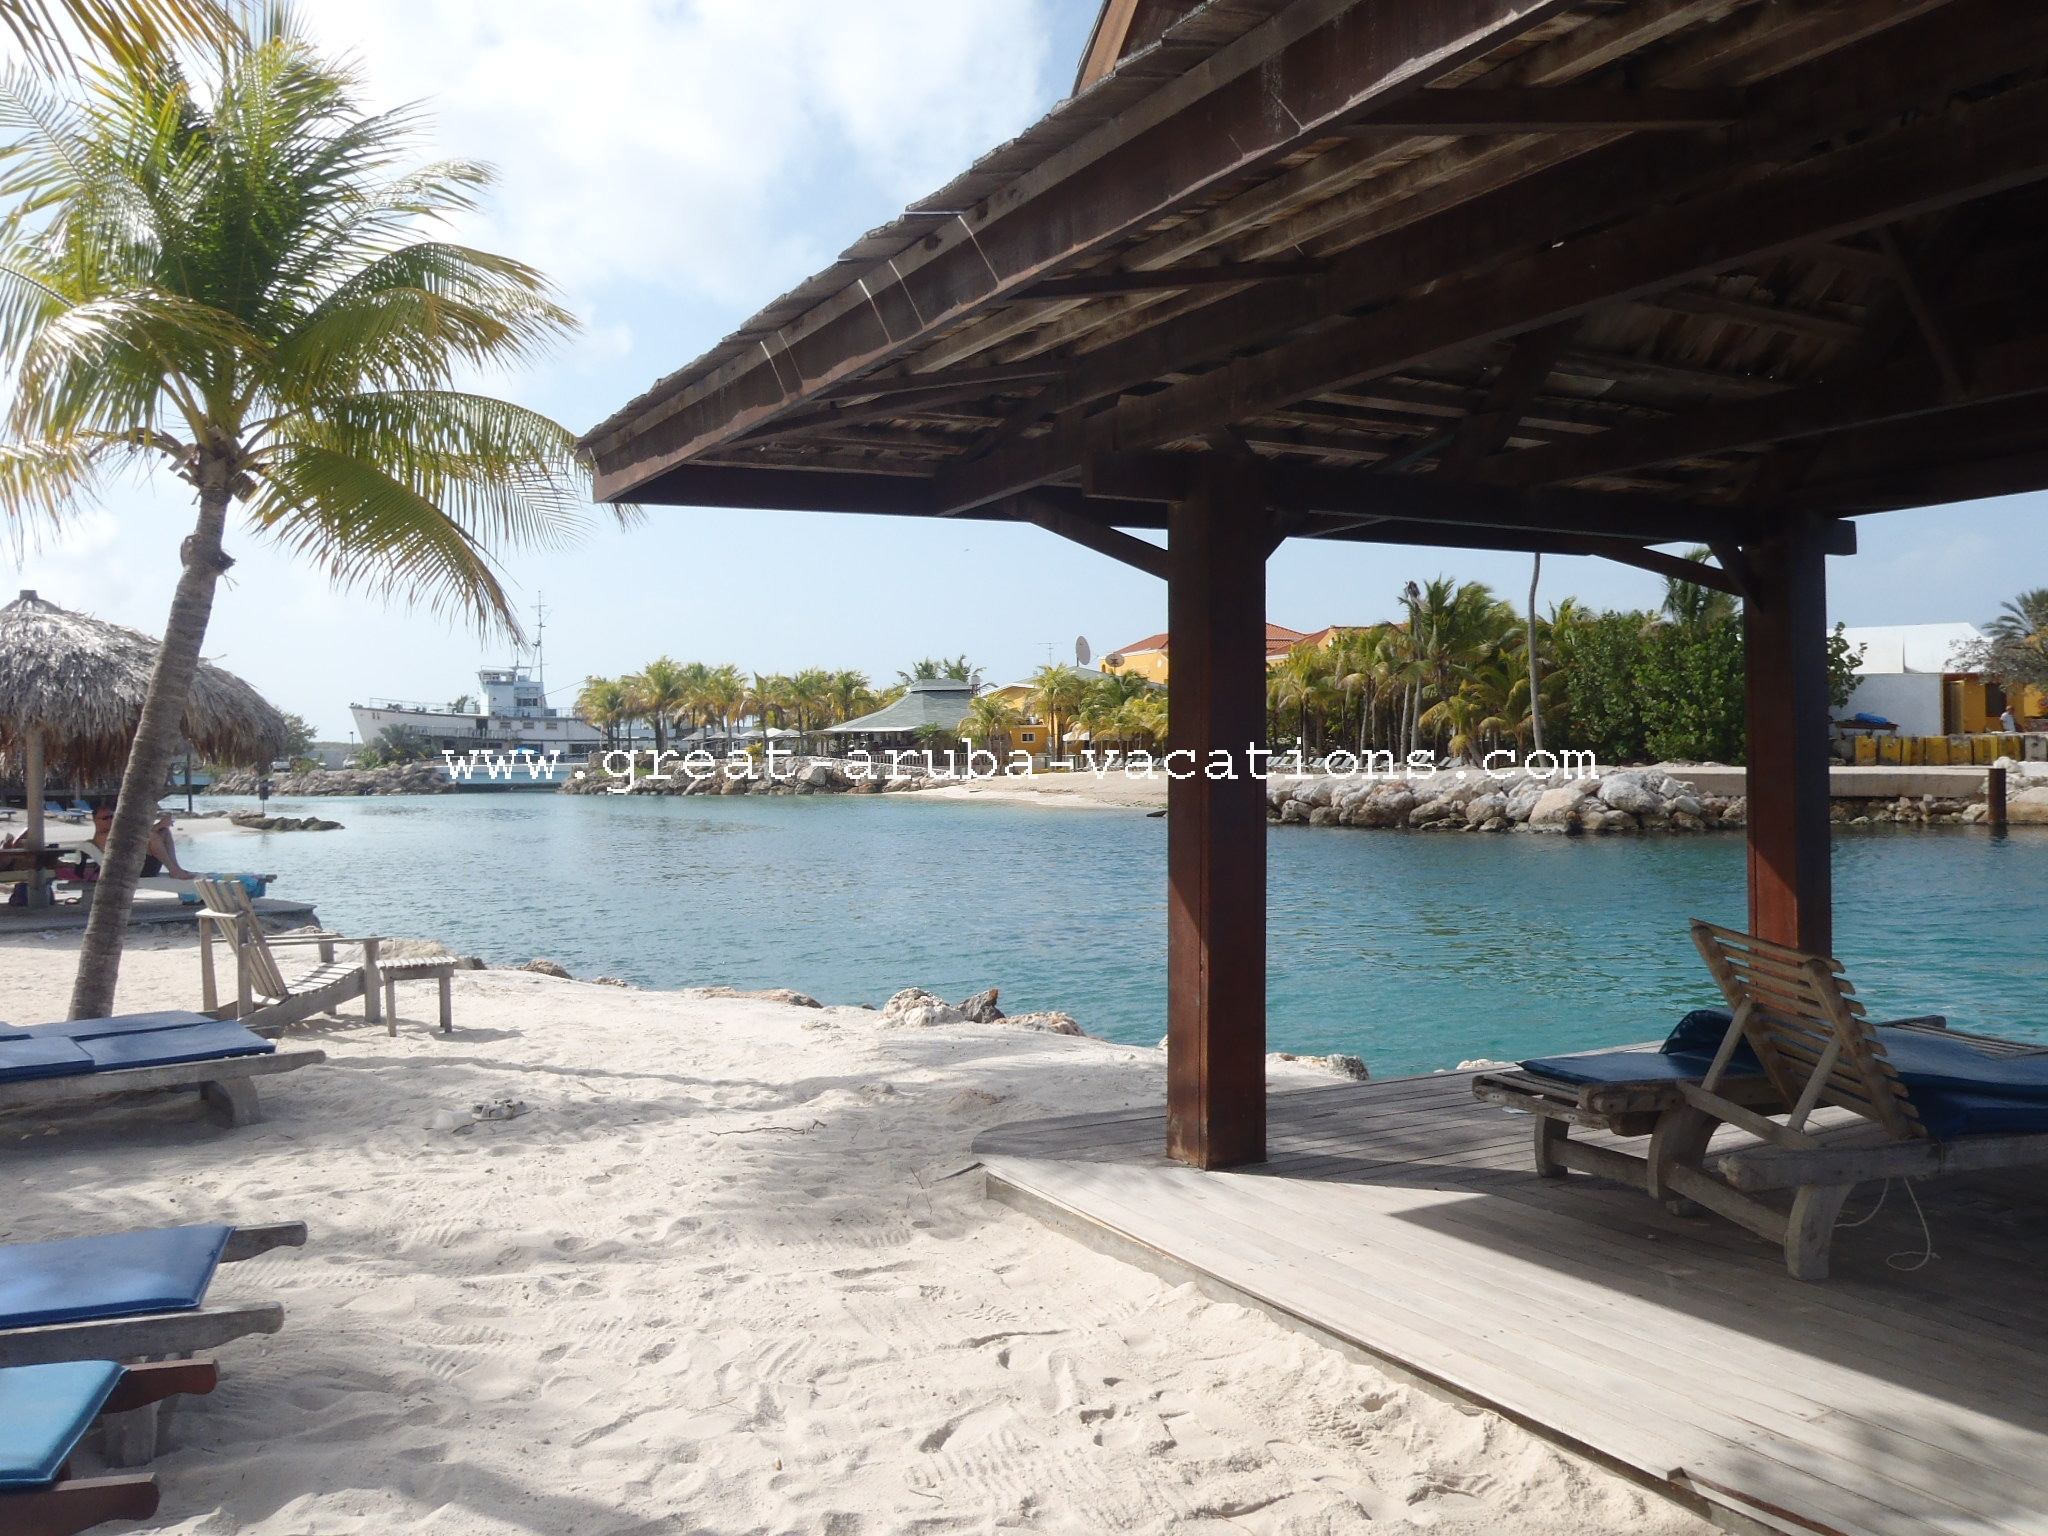 Lions dive beach resort curacao willemstad aruba vacations - Lions dive resort curacao ...